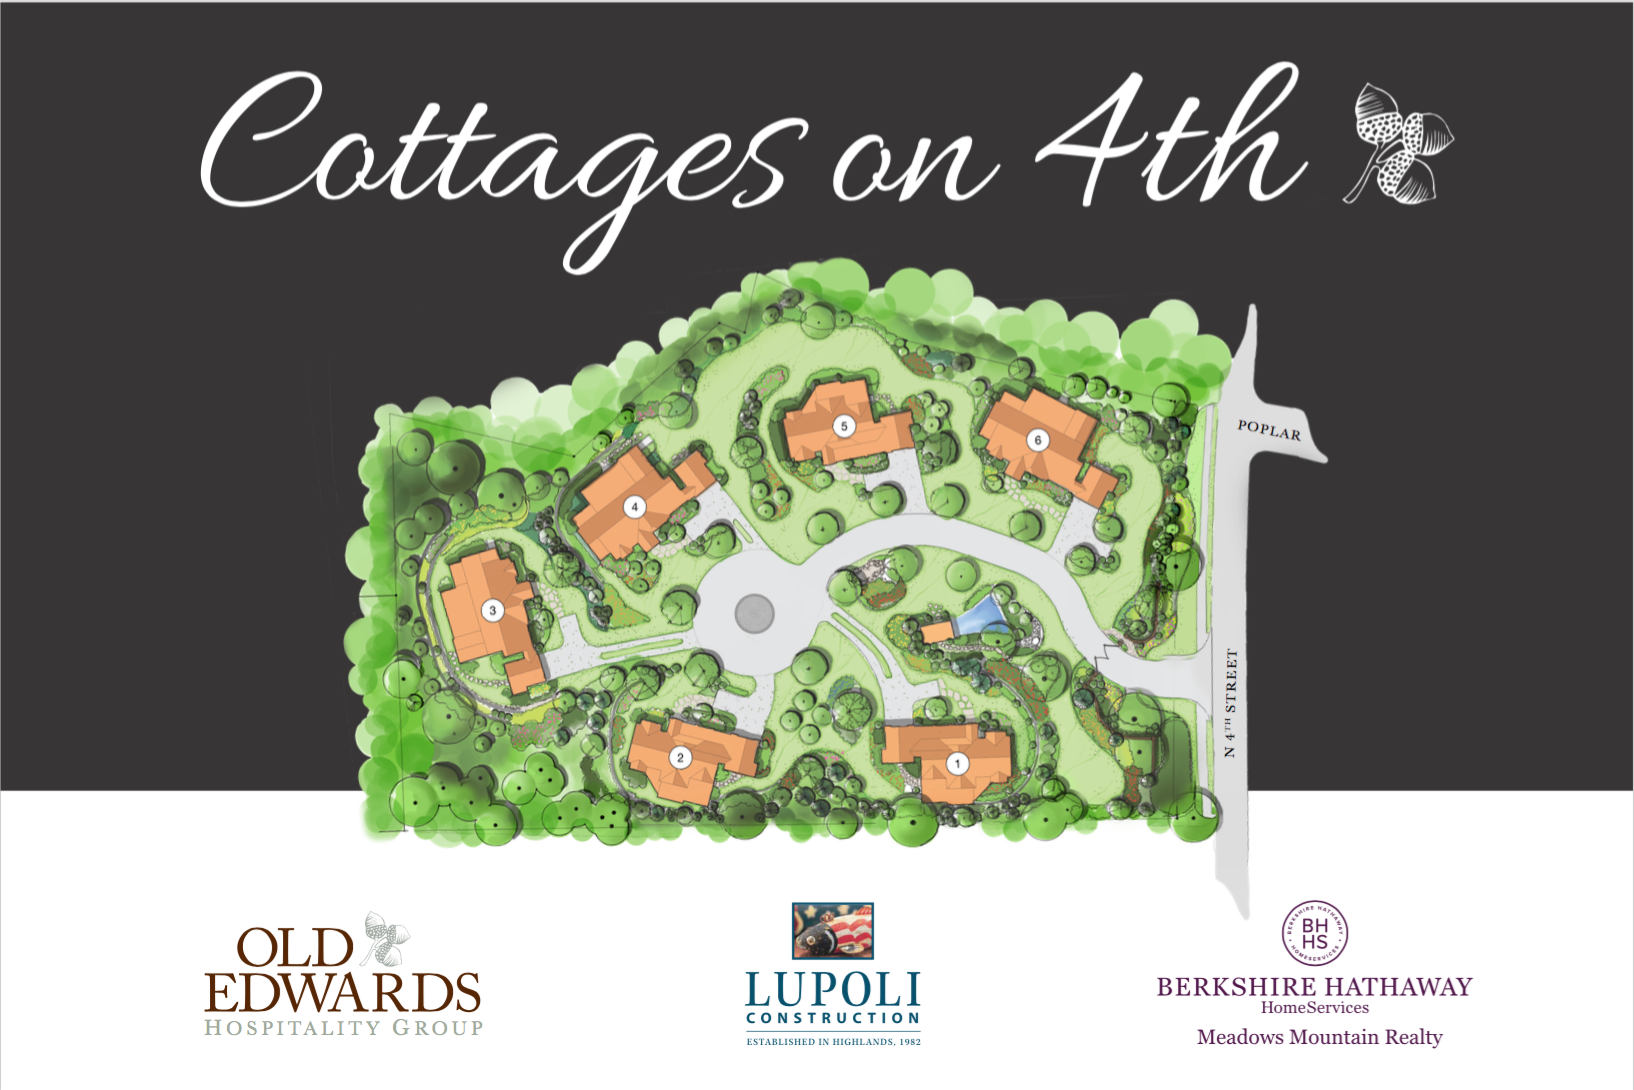 COTTAGES ON 4th - Luxury Homes by Old Edwards Hospitality Group, Coming Soon